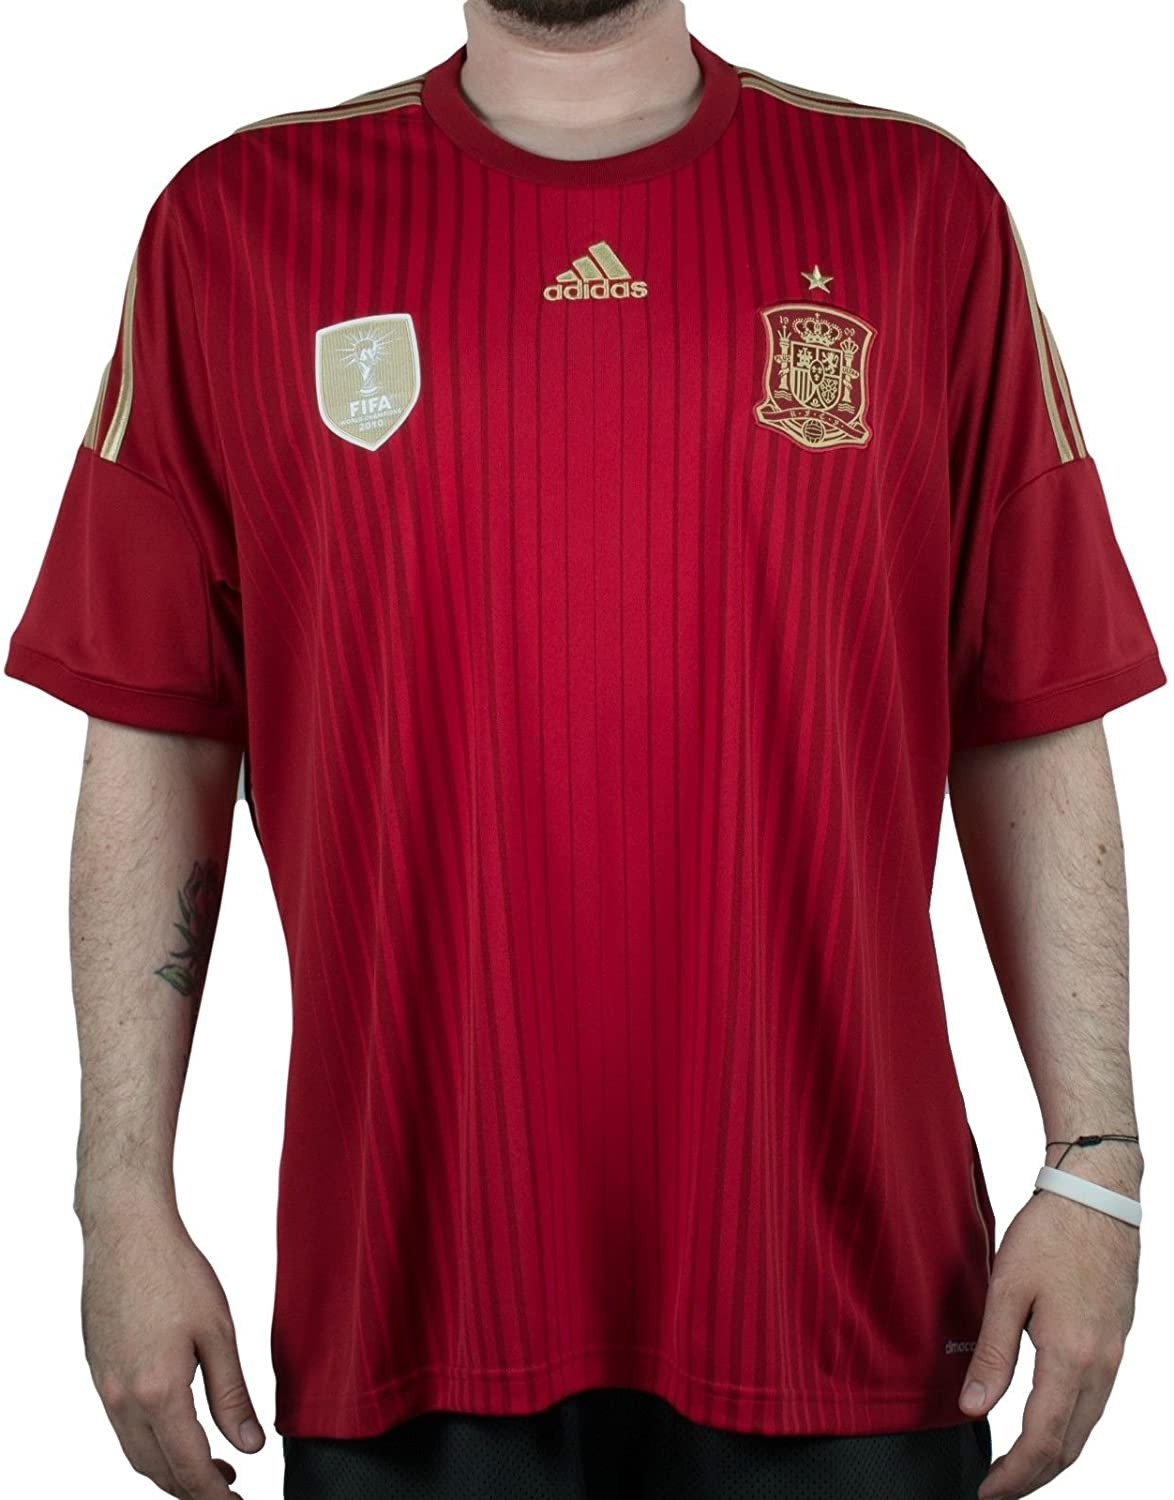 adidas Spain Home Jersey World Cup 2014